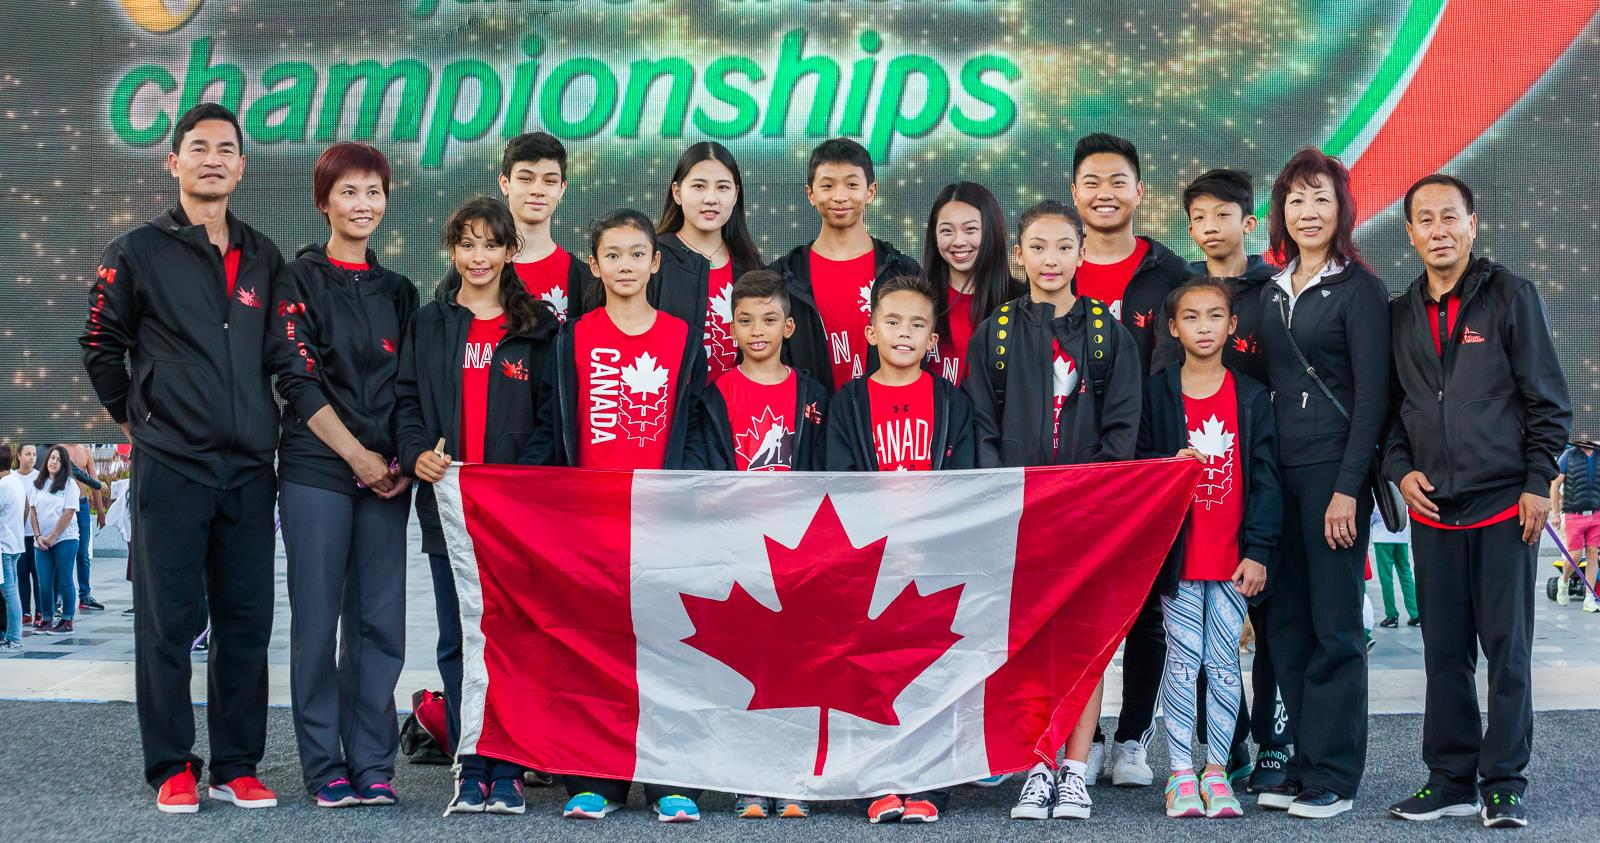 Master Wayland Li (far right) with students Zeina, Nima, Ashley, Remy, Adam, Rex and other members of the Canadian National Wushu Team.